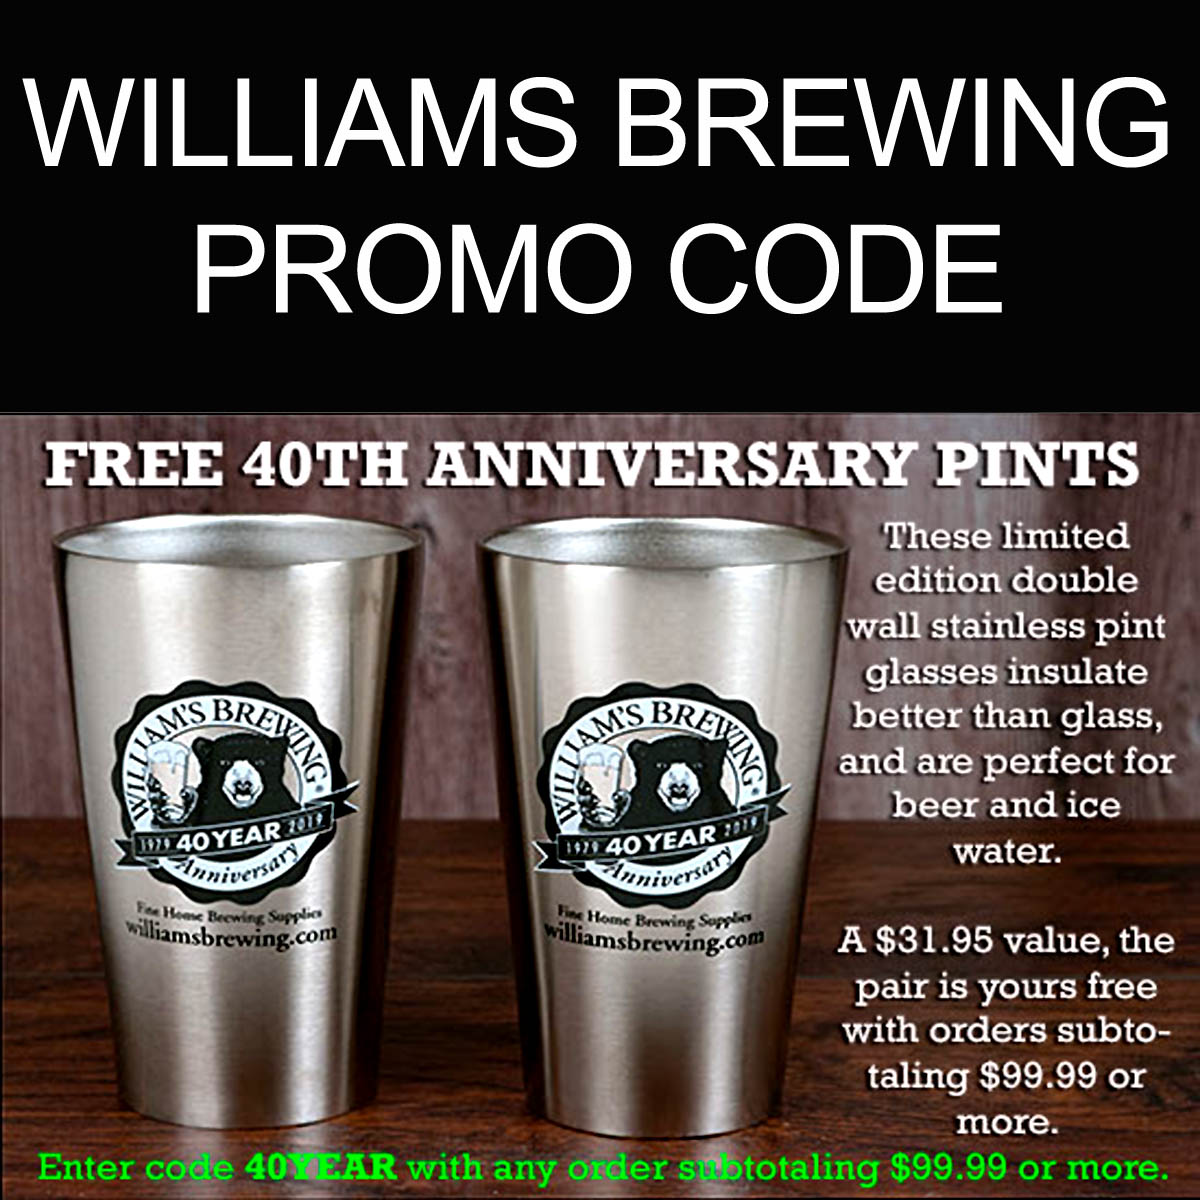 Home Wine Making Coupon Codes for Spend $100 at Williams Brewing and Get a Pair of Stainless Steel Pint Glasses With This Williams Brewing Promo Code Coupon Code